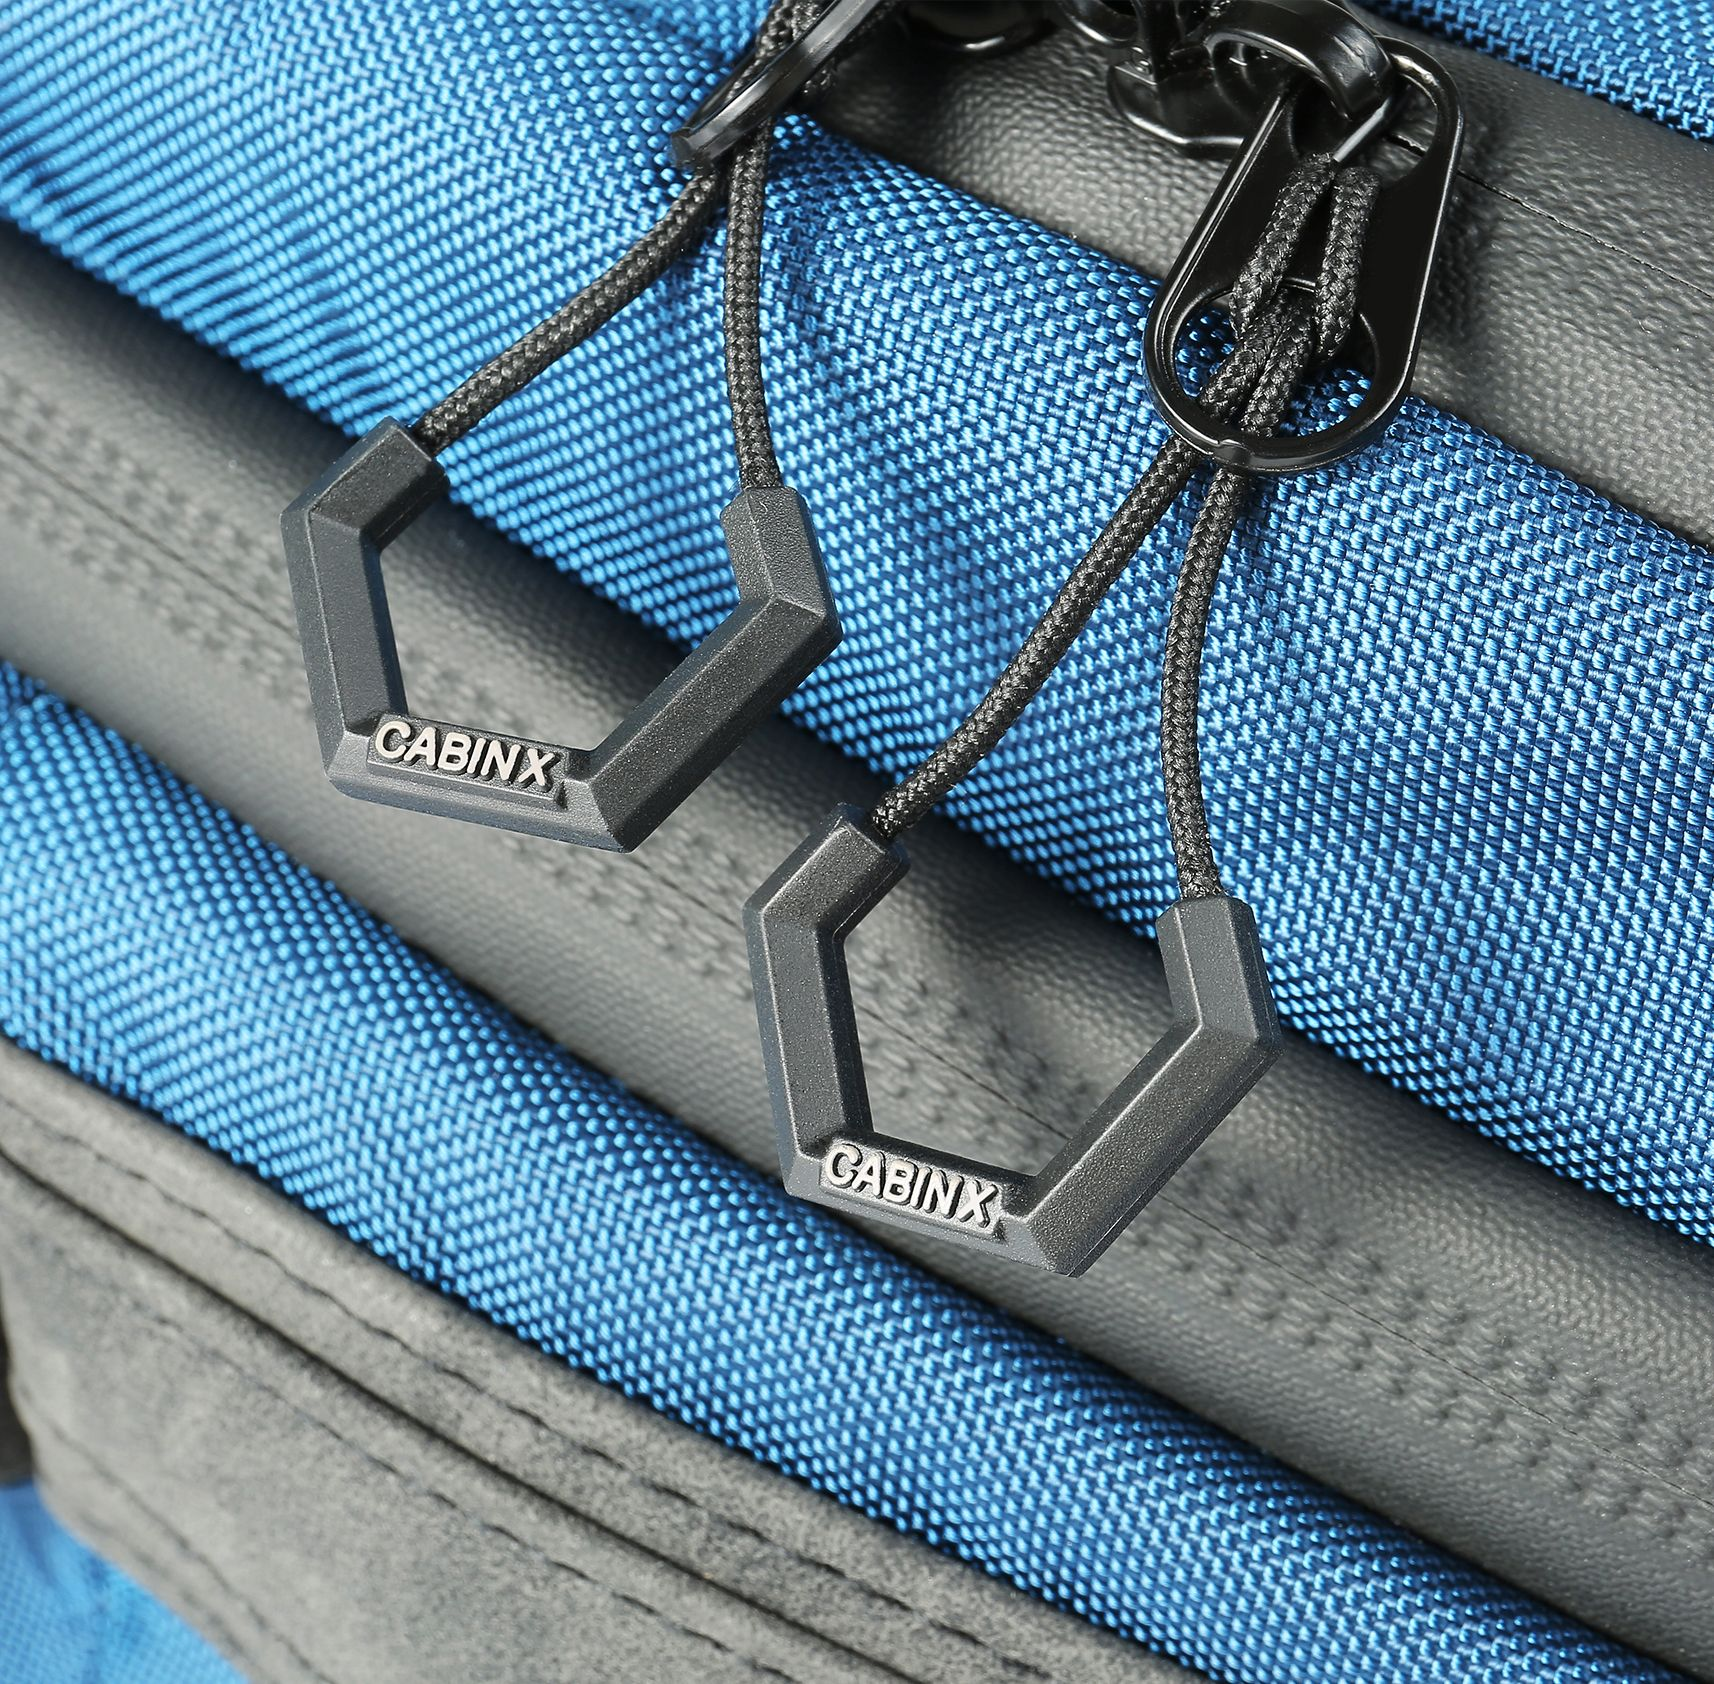 Cabin X One Hybrid Zip Detailing With Images Day Bag Backpack Straps Backpacks